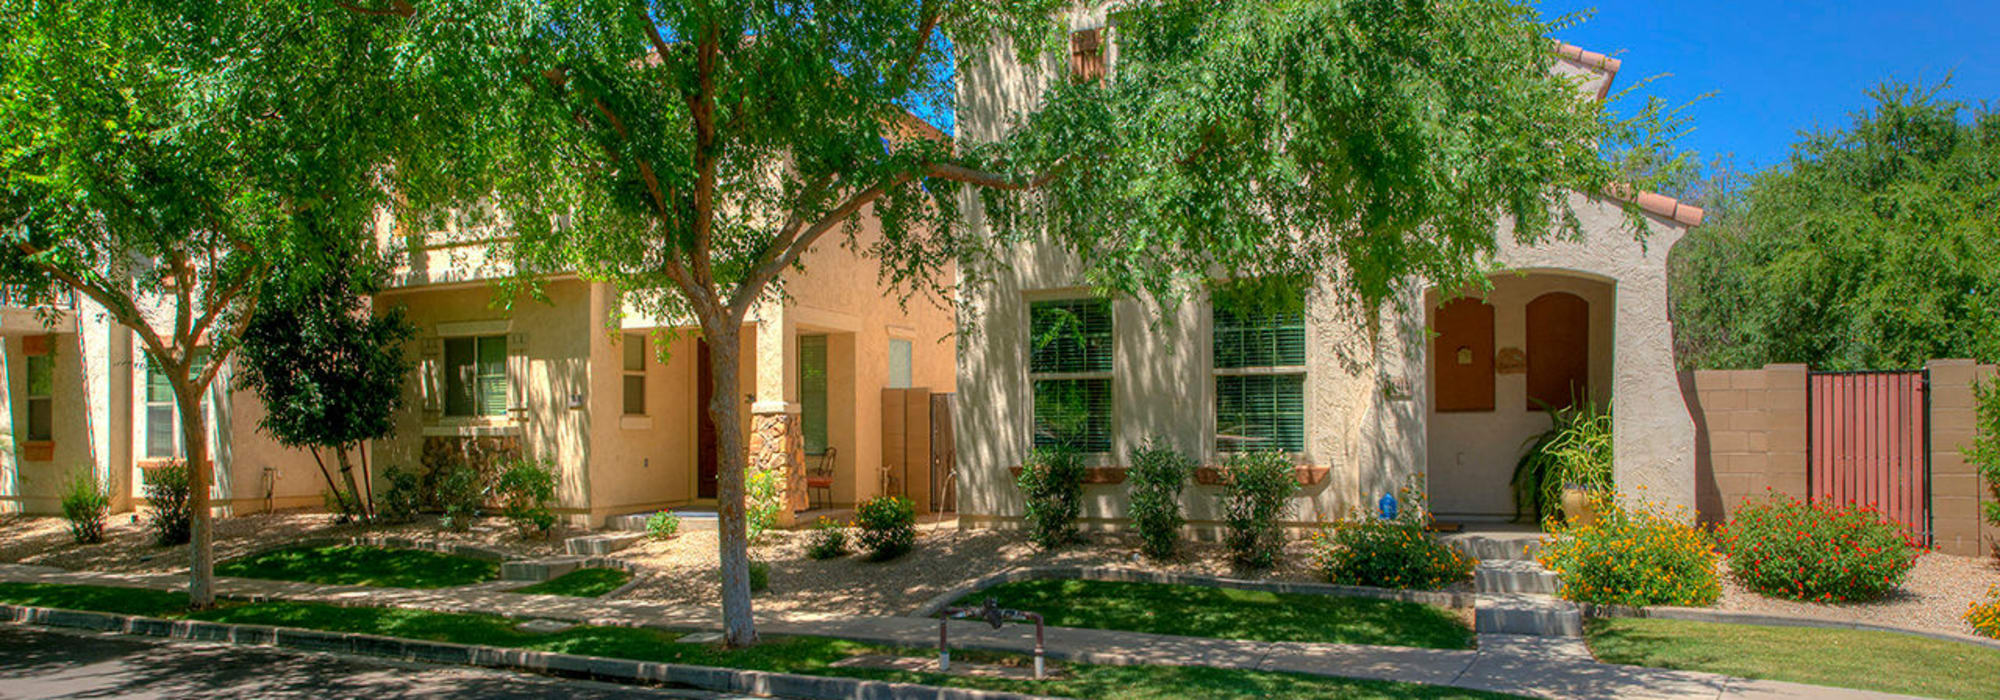 Landscaped grounds around BB Living at Higley Park in Gilbert, Arizona